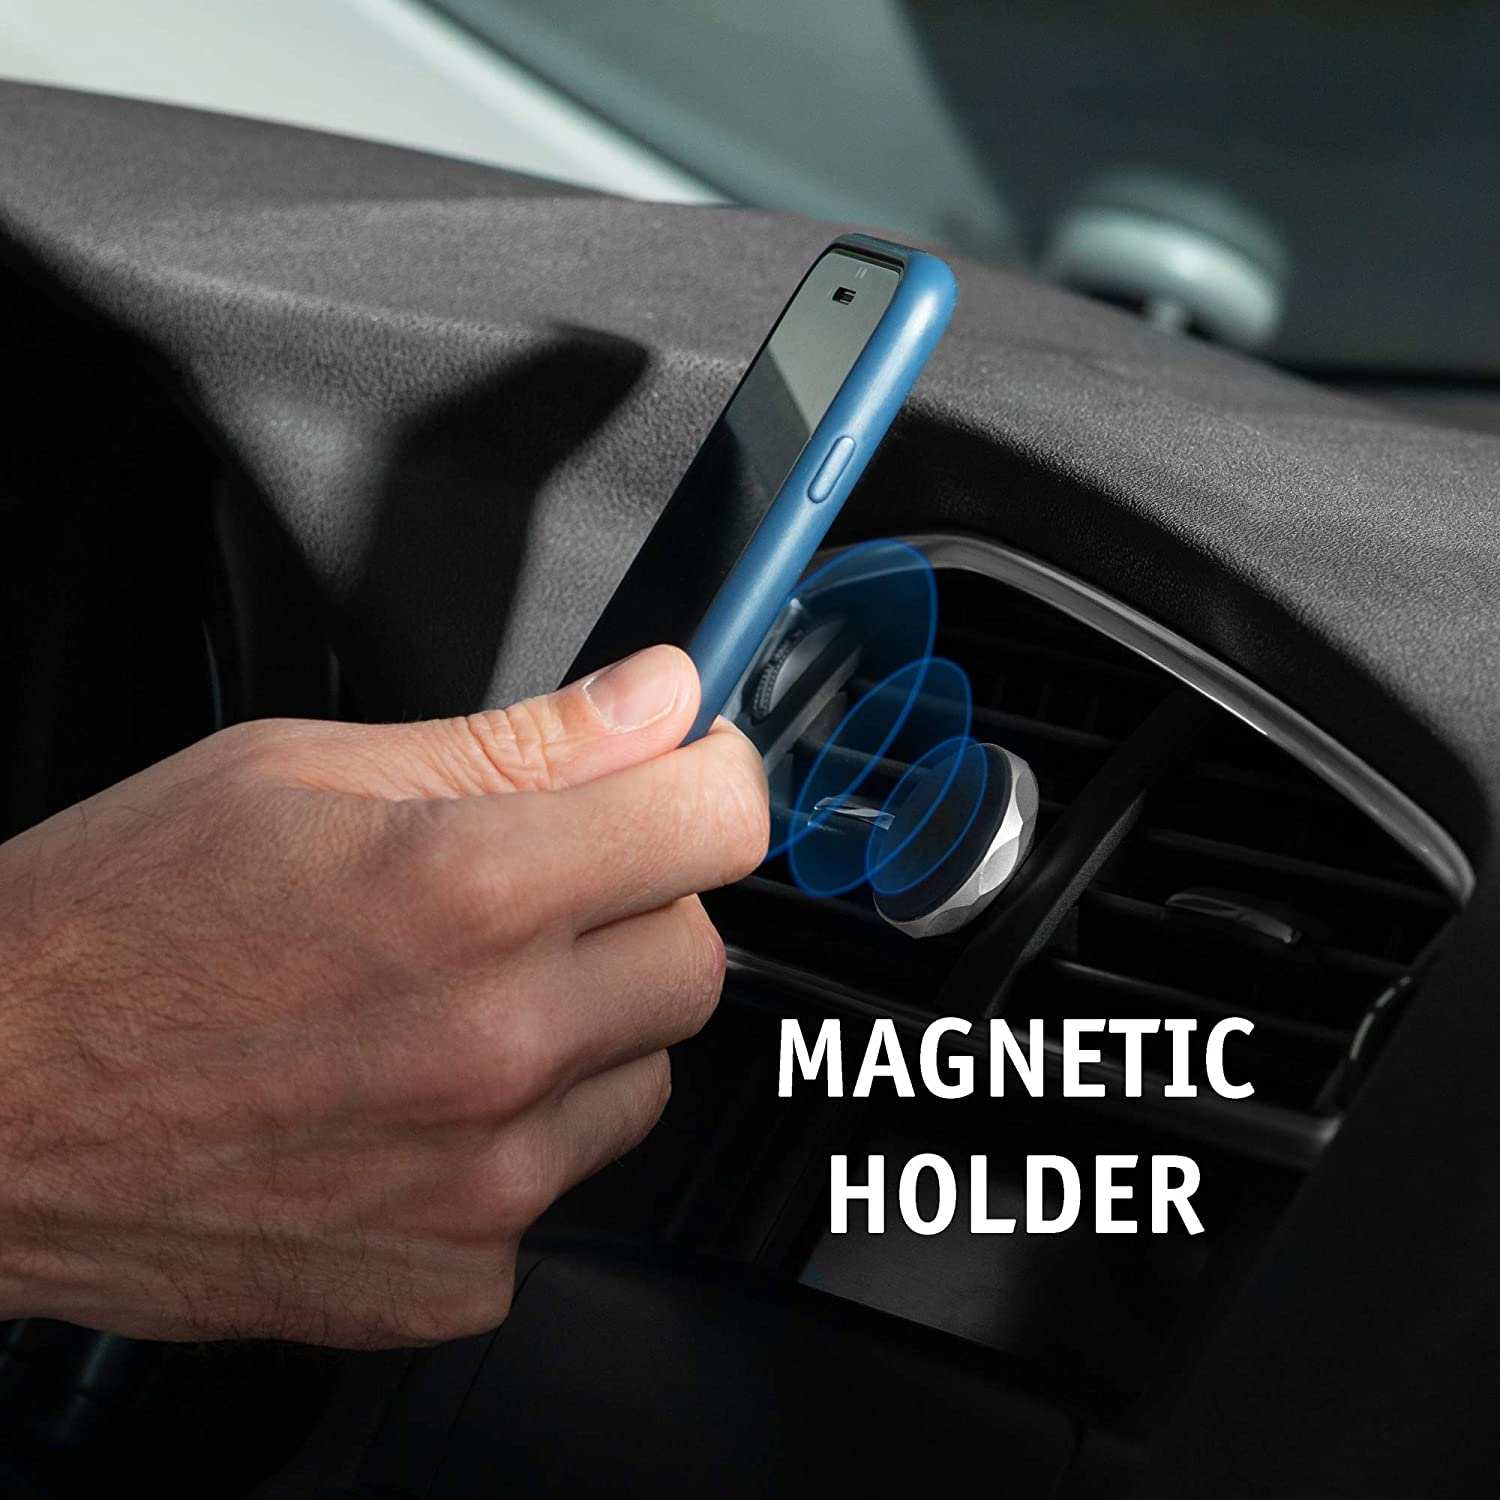 Vent Magnet 360 Degrees Easily Adjustable with Strong Magnets Car Mount for iPhone Samsung Huawei Xiaomi Google Pixel Cellphone Holder for Car Black Car Magnetic Phone Holder by MG Canada